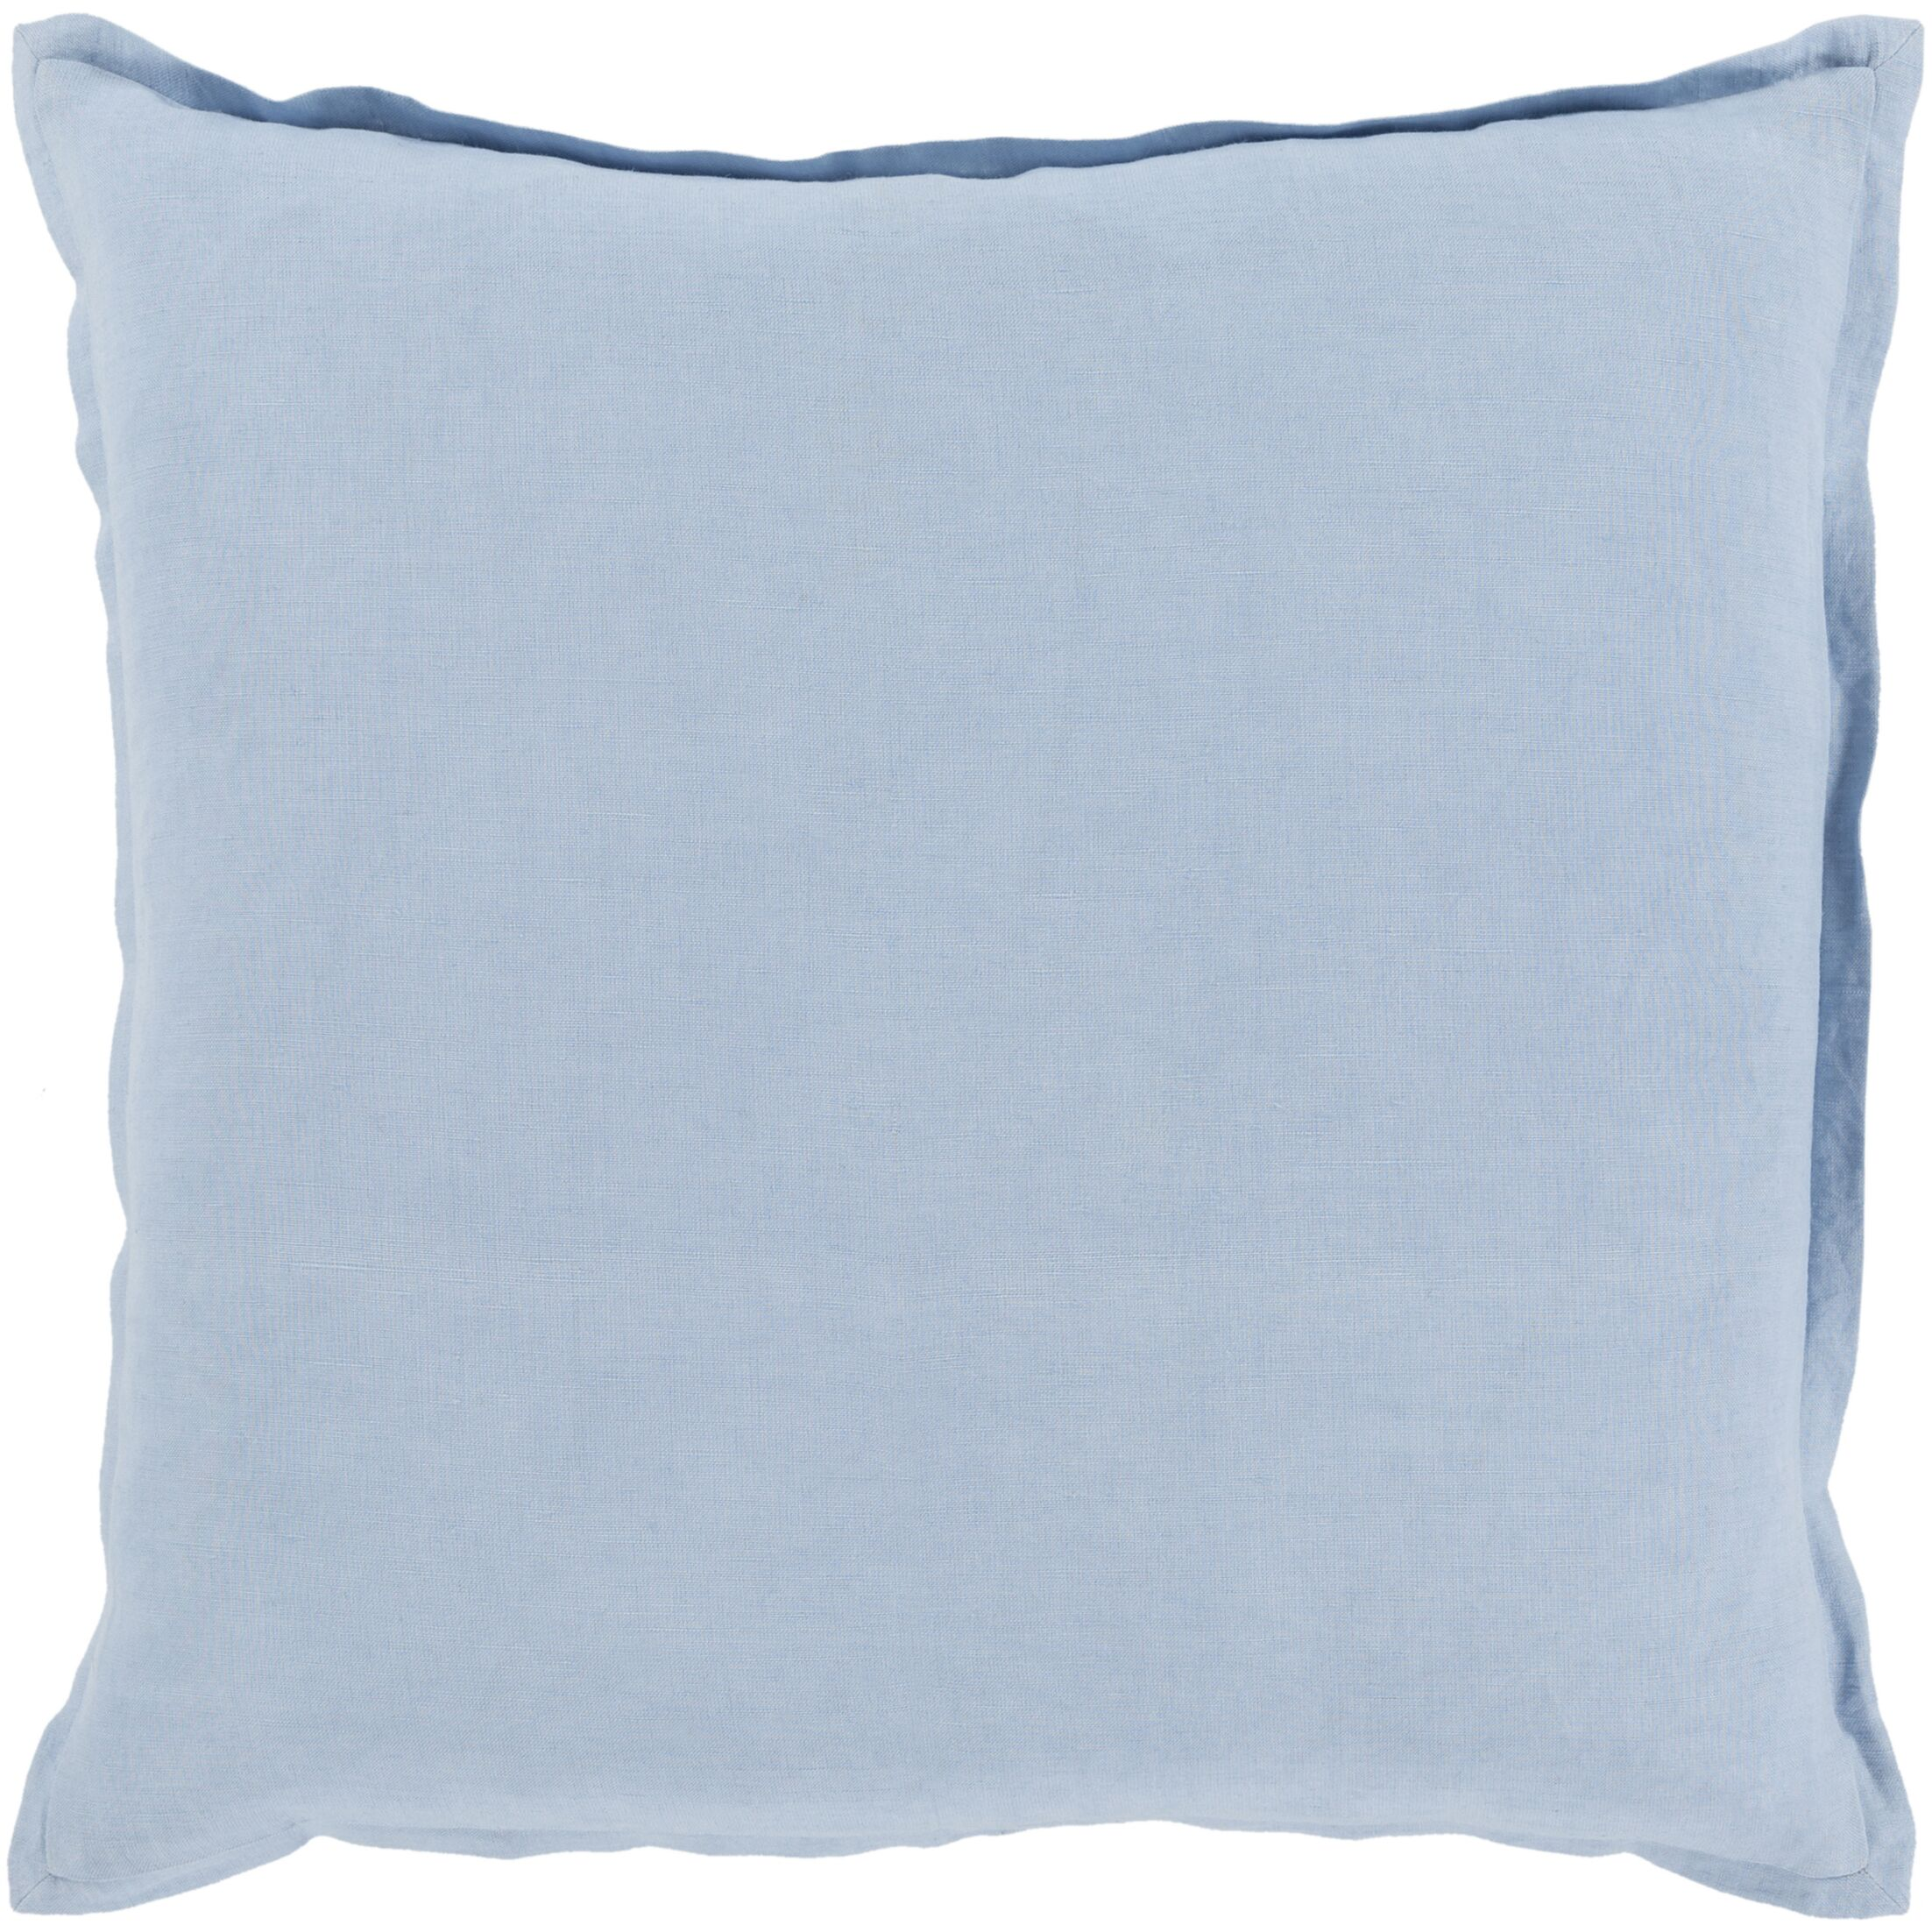 Strathmore Pillow Cover Size: 22